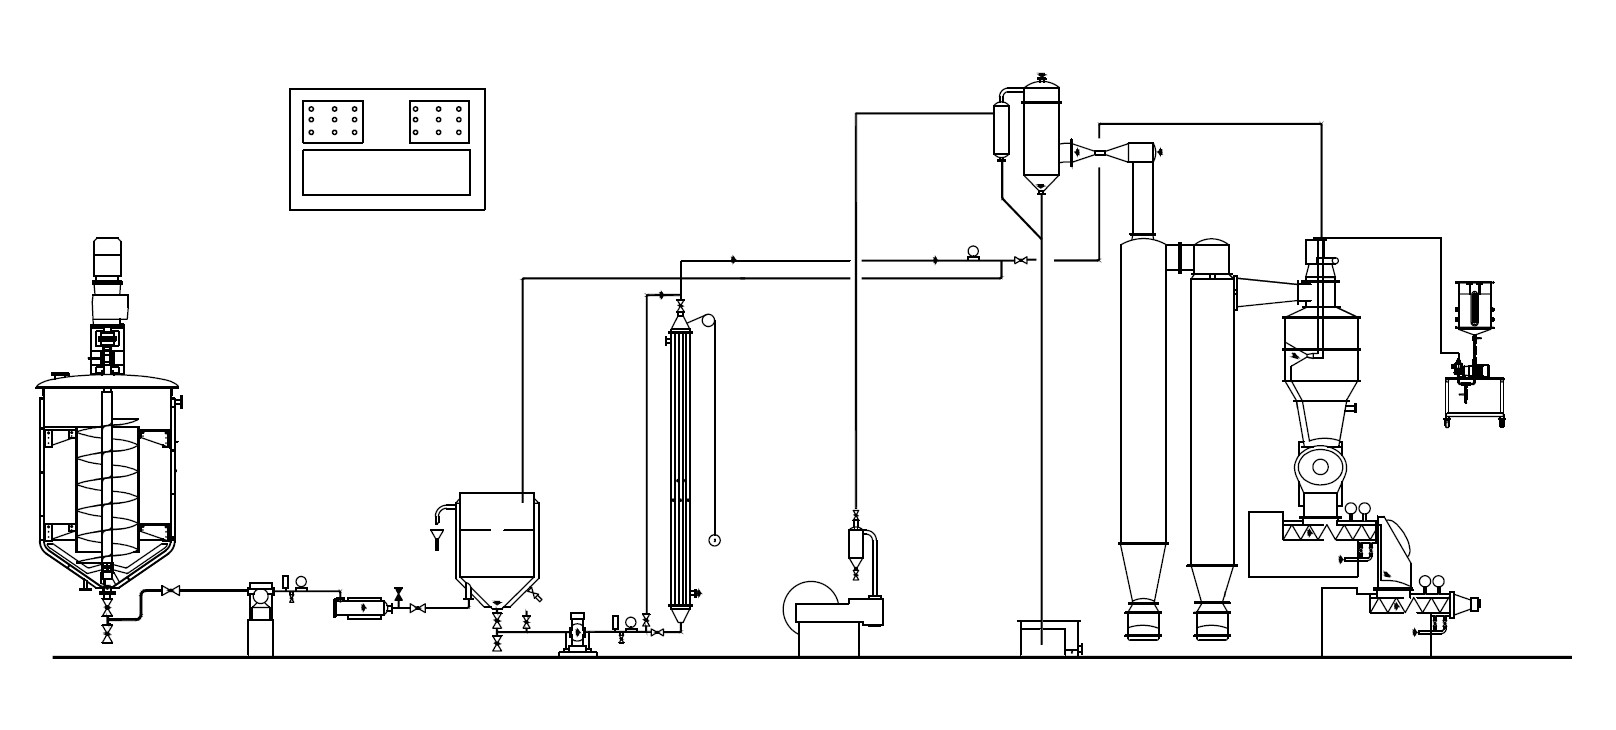 Drying plant diagram - Soap factory